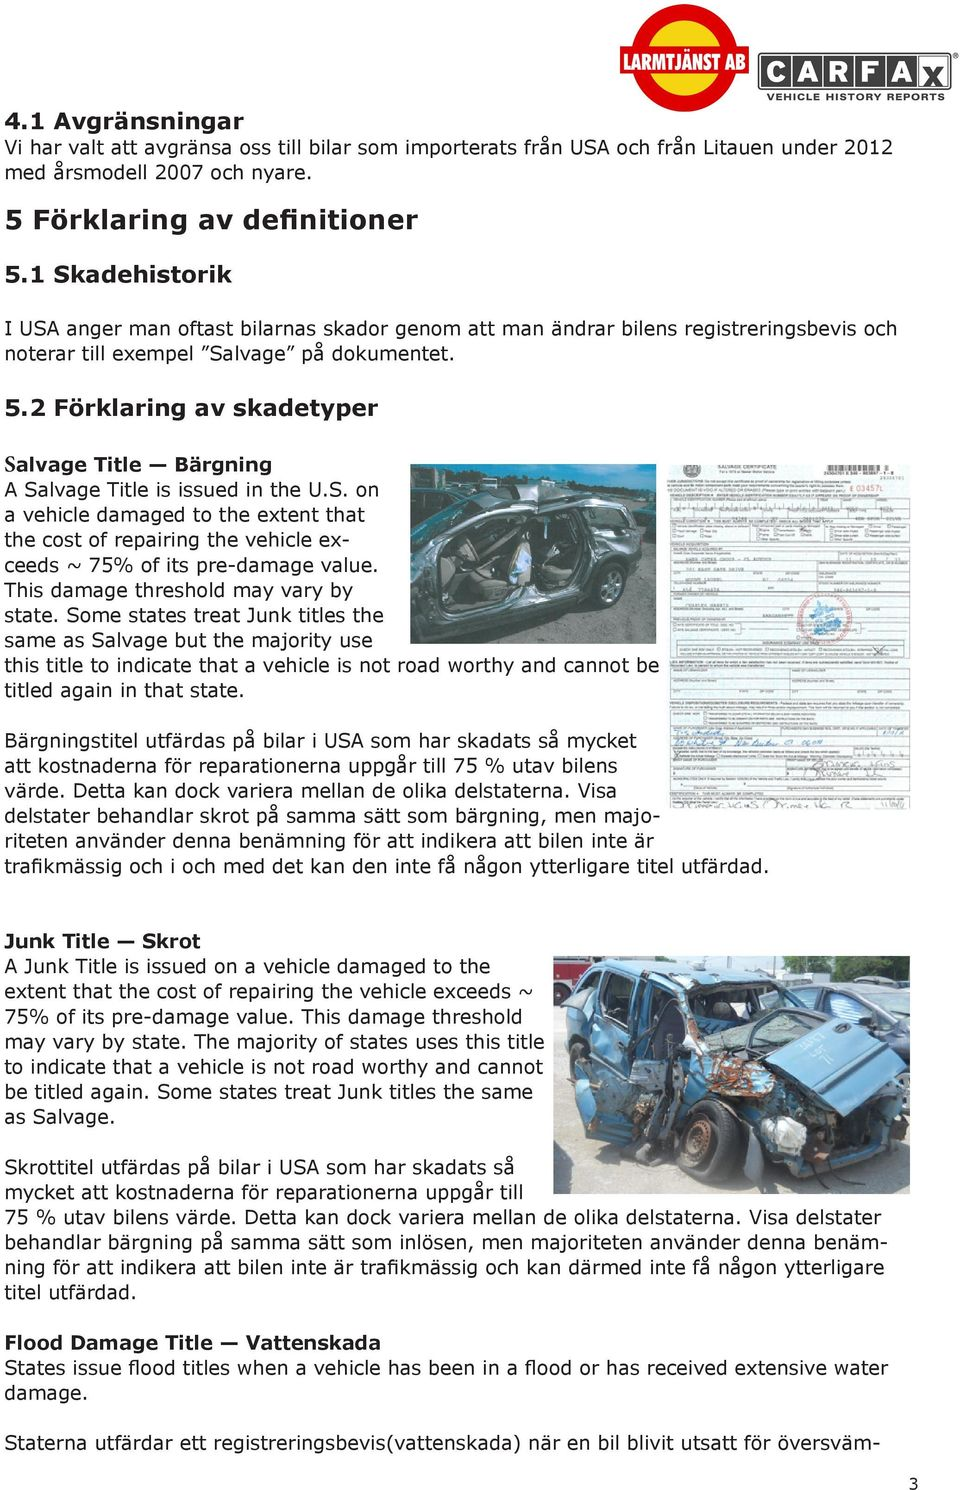 2 Förklaring av skadetyper Salvage Title Bärgning A Salvage Title is issued in the U.S. on a vehicle damaged to the extent that the cost of repairing the vehicle exceeds ~ 75% of its pre-damage value.